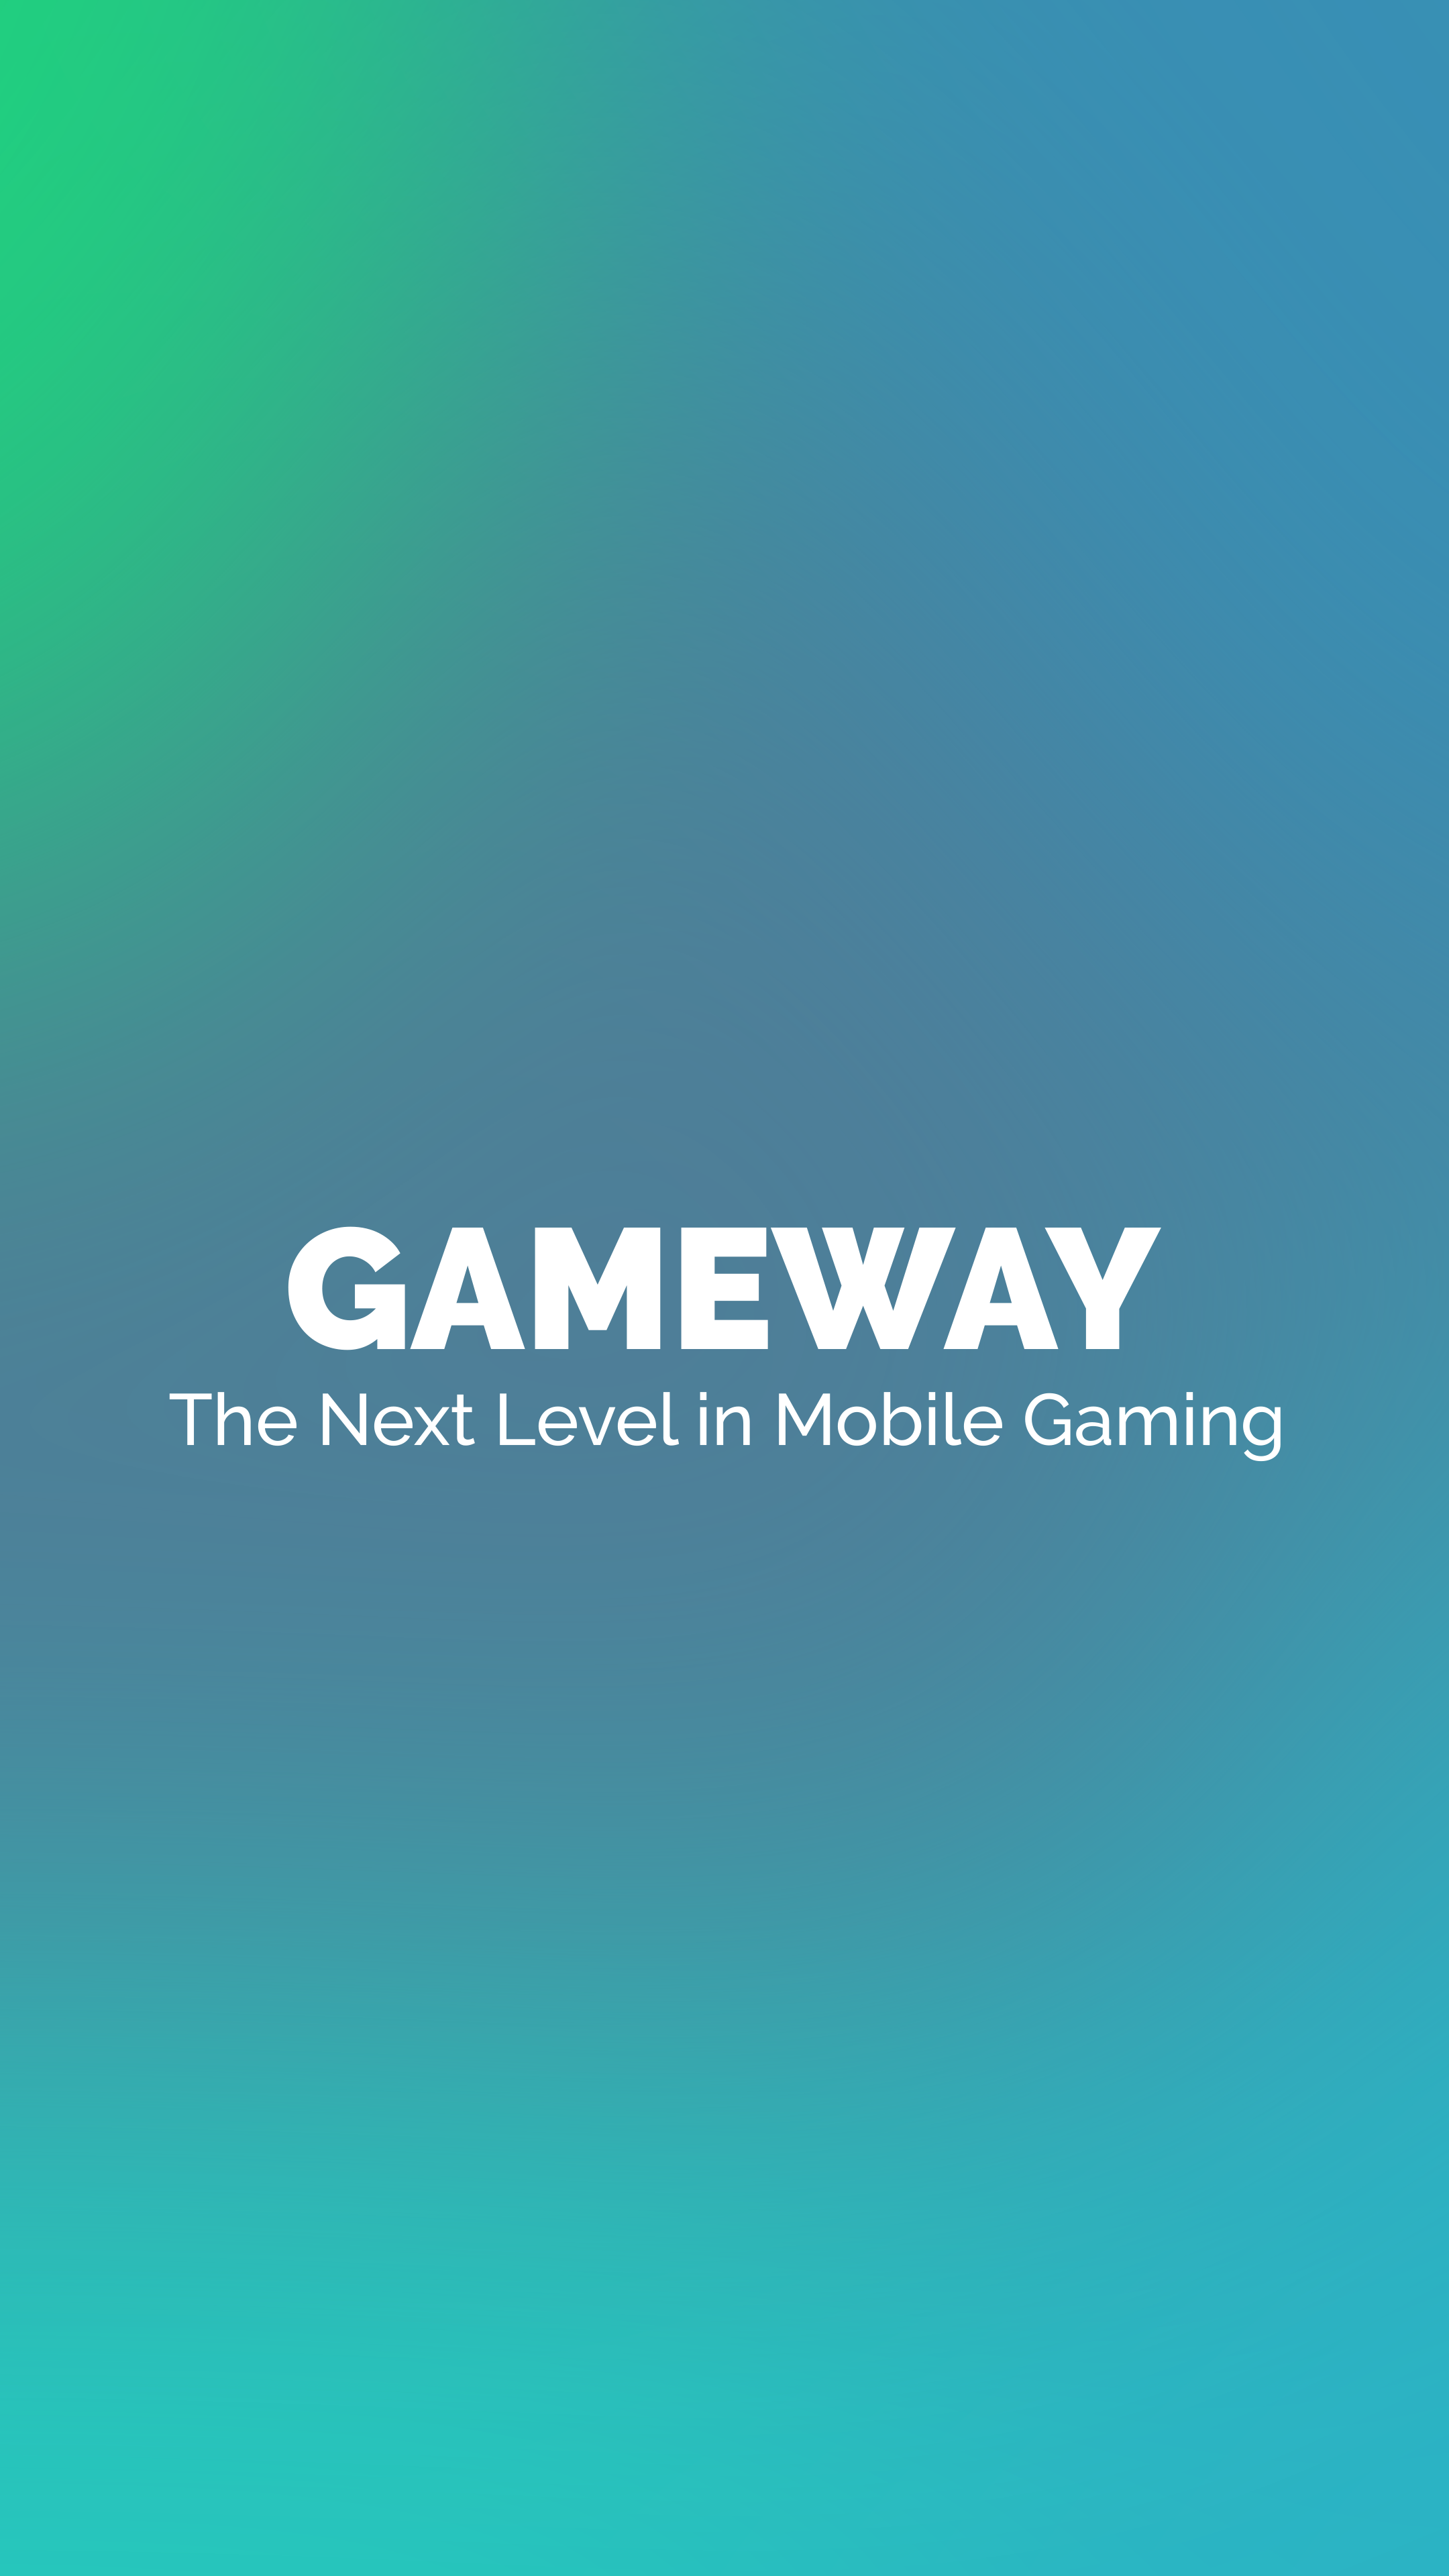 Gameway: The Next Level in Mobile Gaming Jobs - AngelList